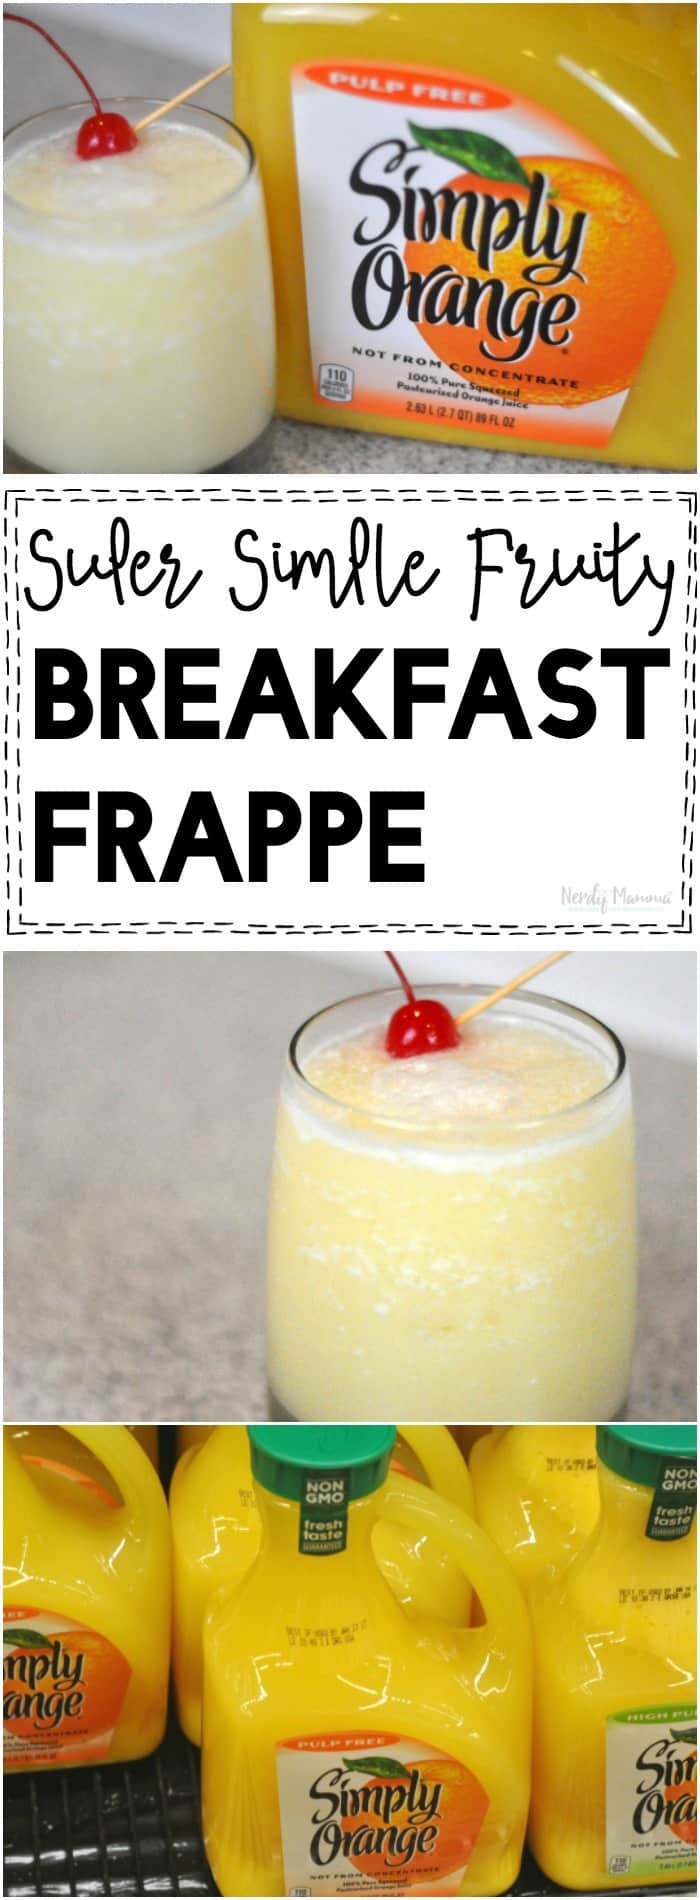 OMG! This super simple fruity breakfast frappe is the PERFECT brunch drink!